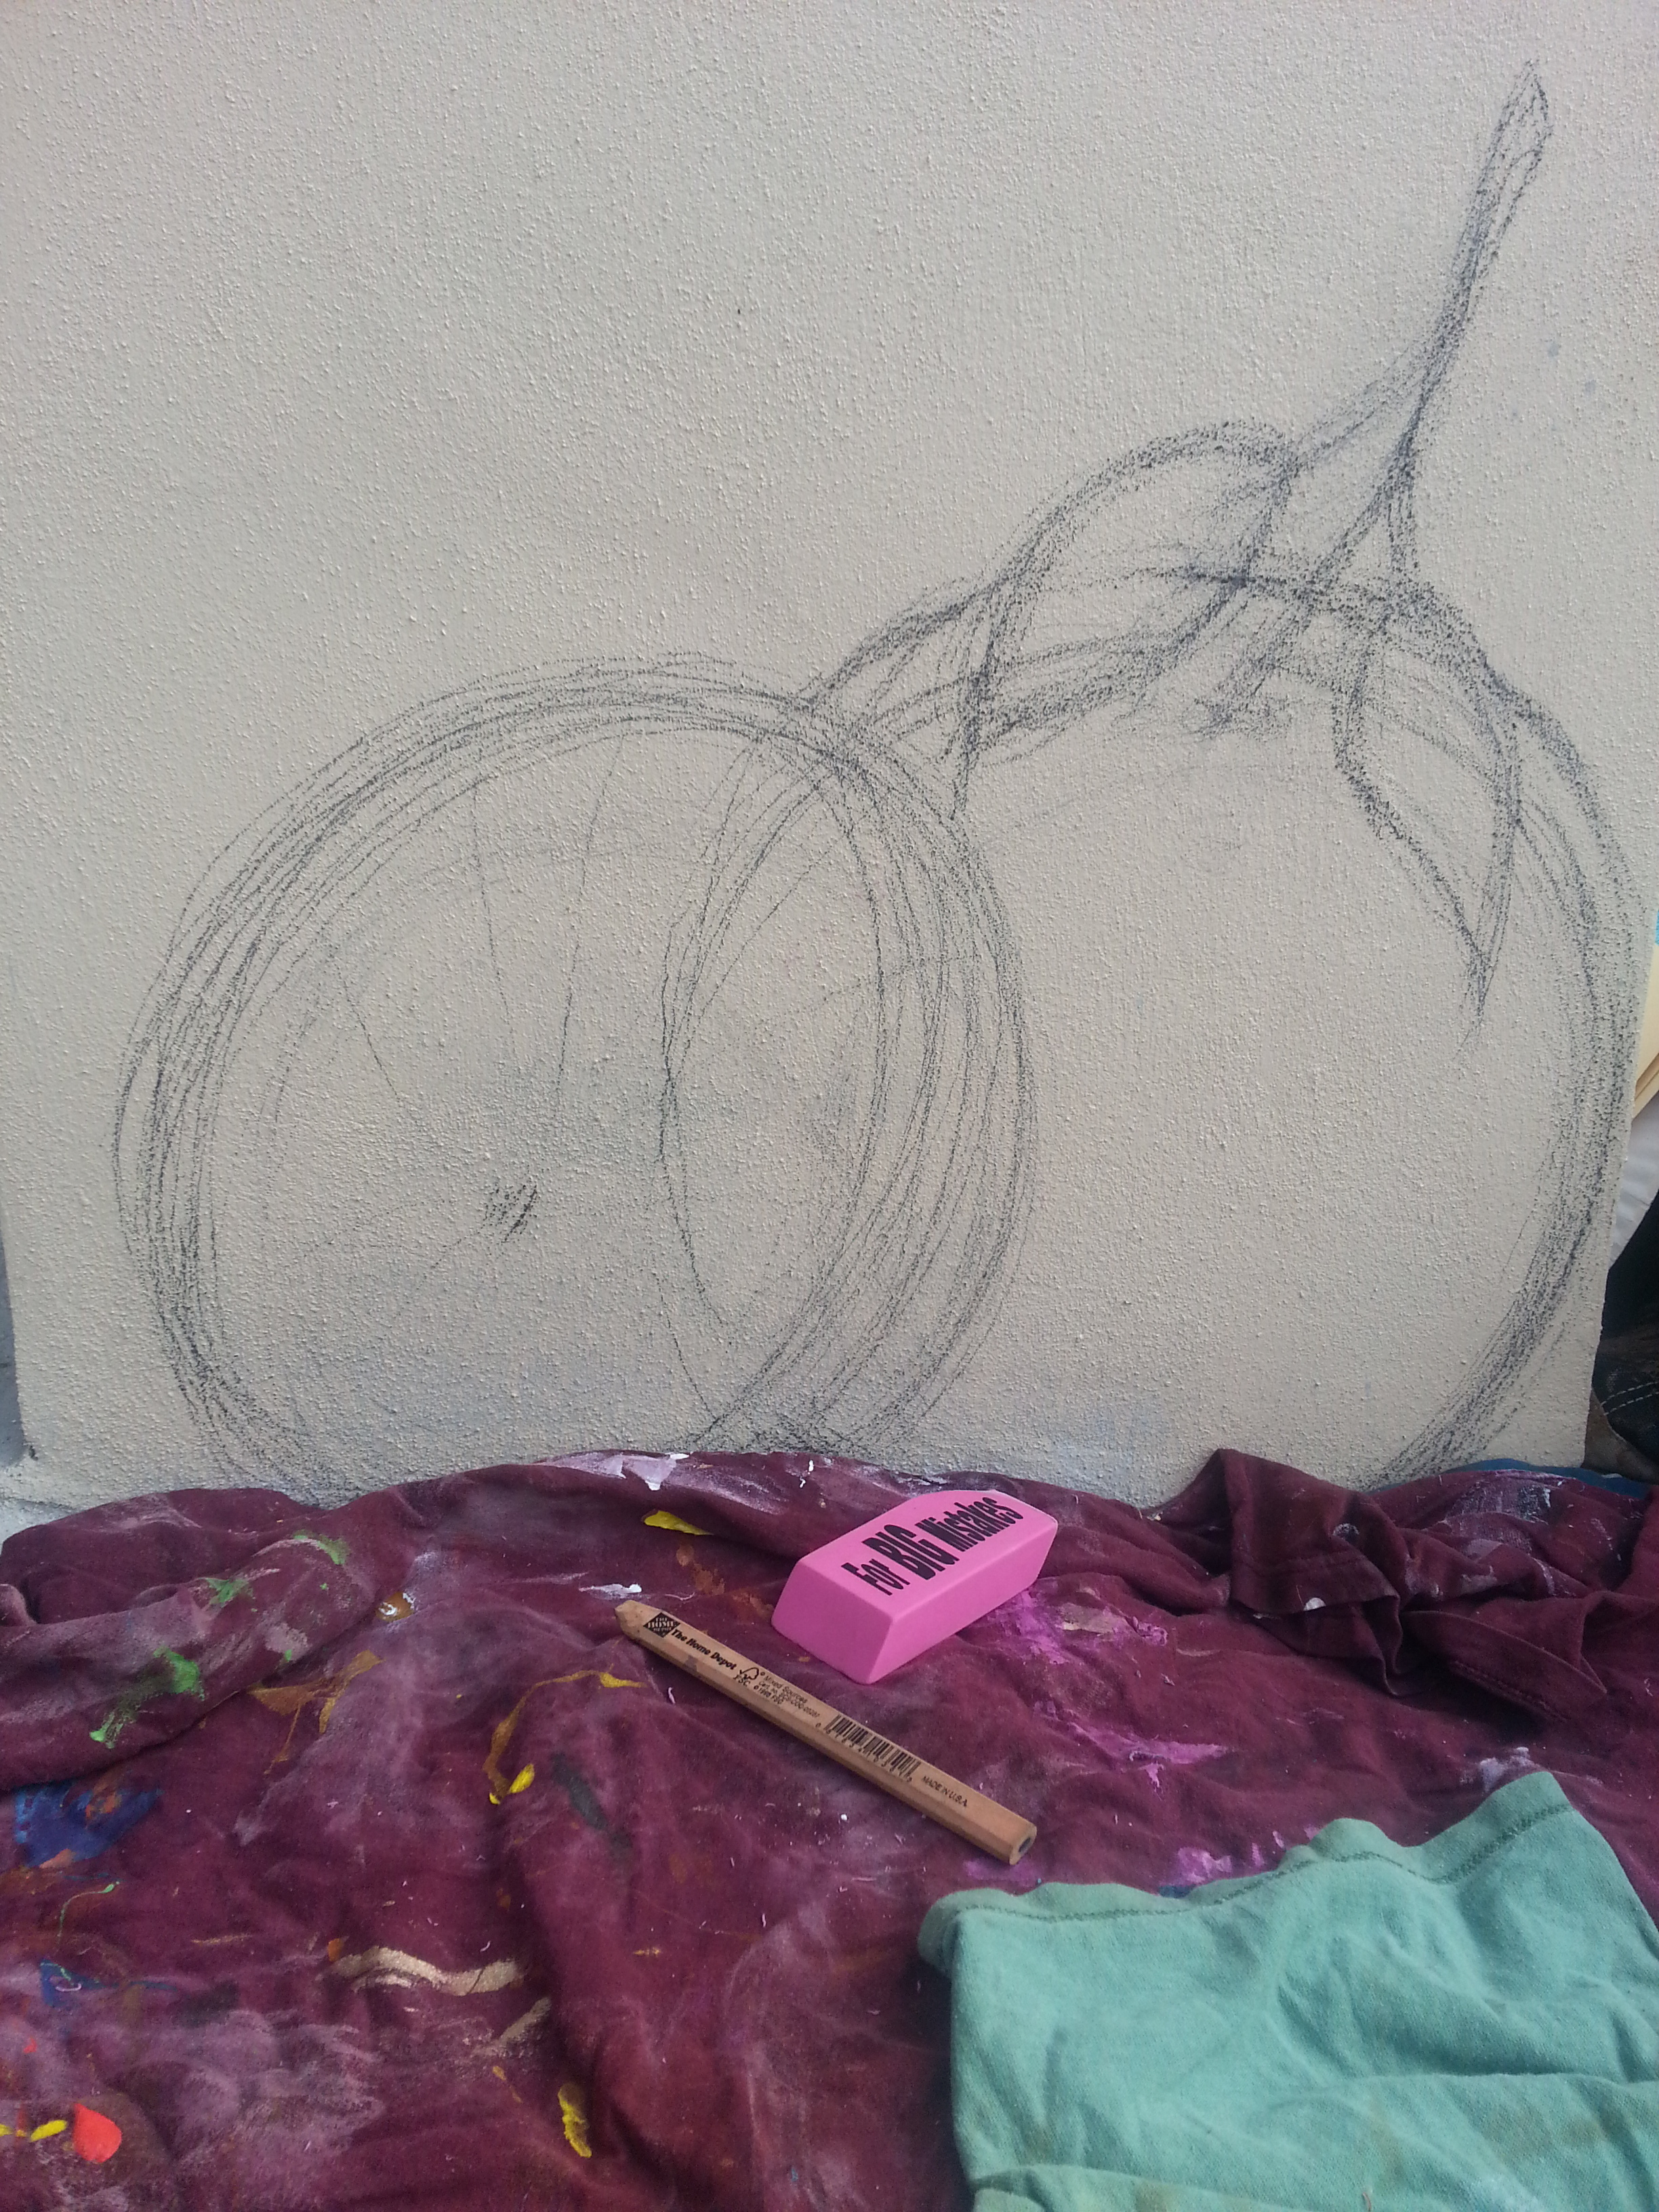 Grapefruit-mural-sketch-ana-livingston-fine-artist-clearwater-florida.jpg